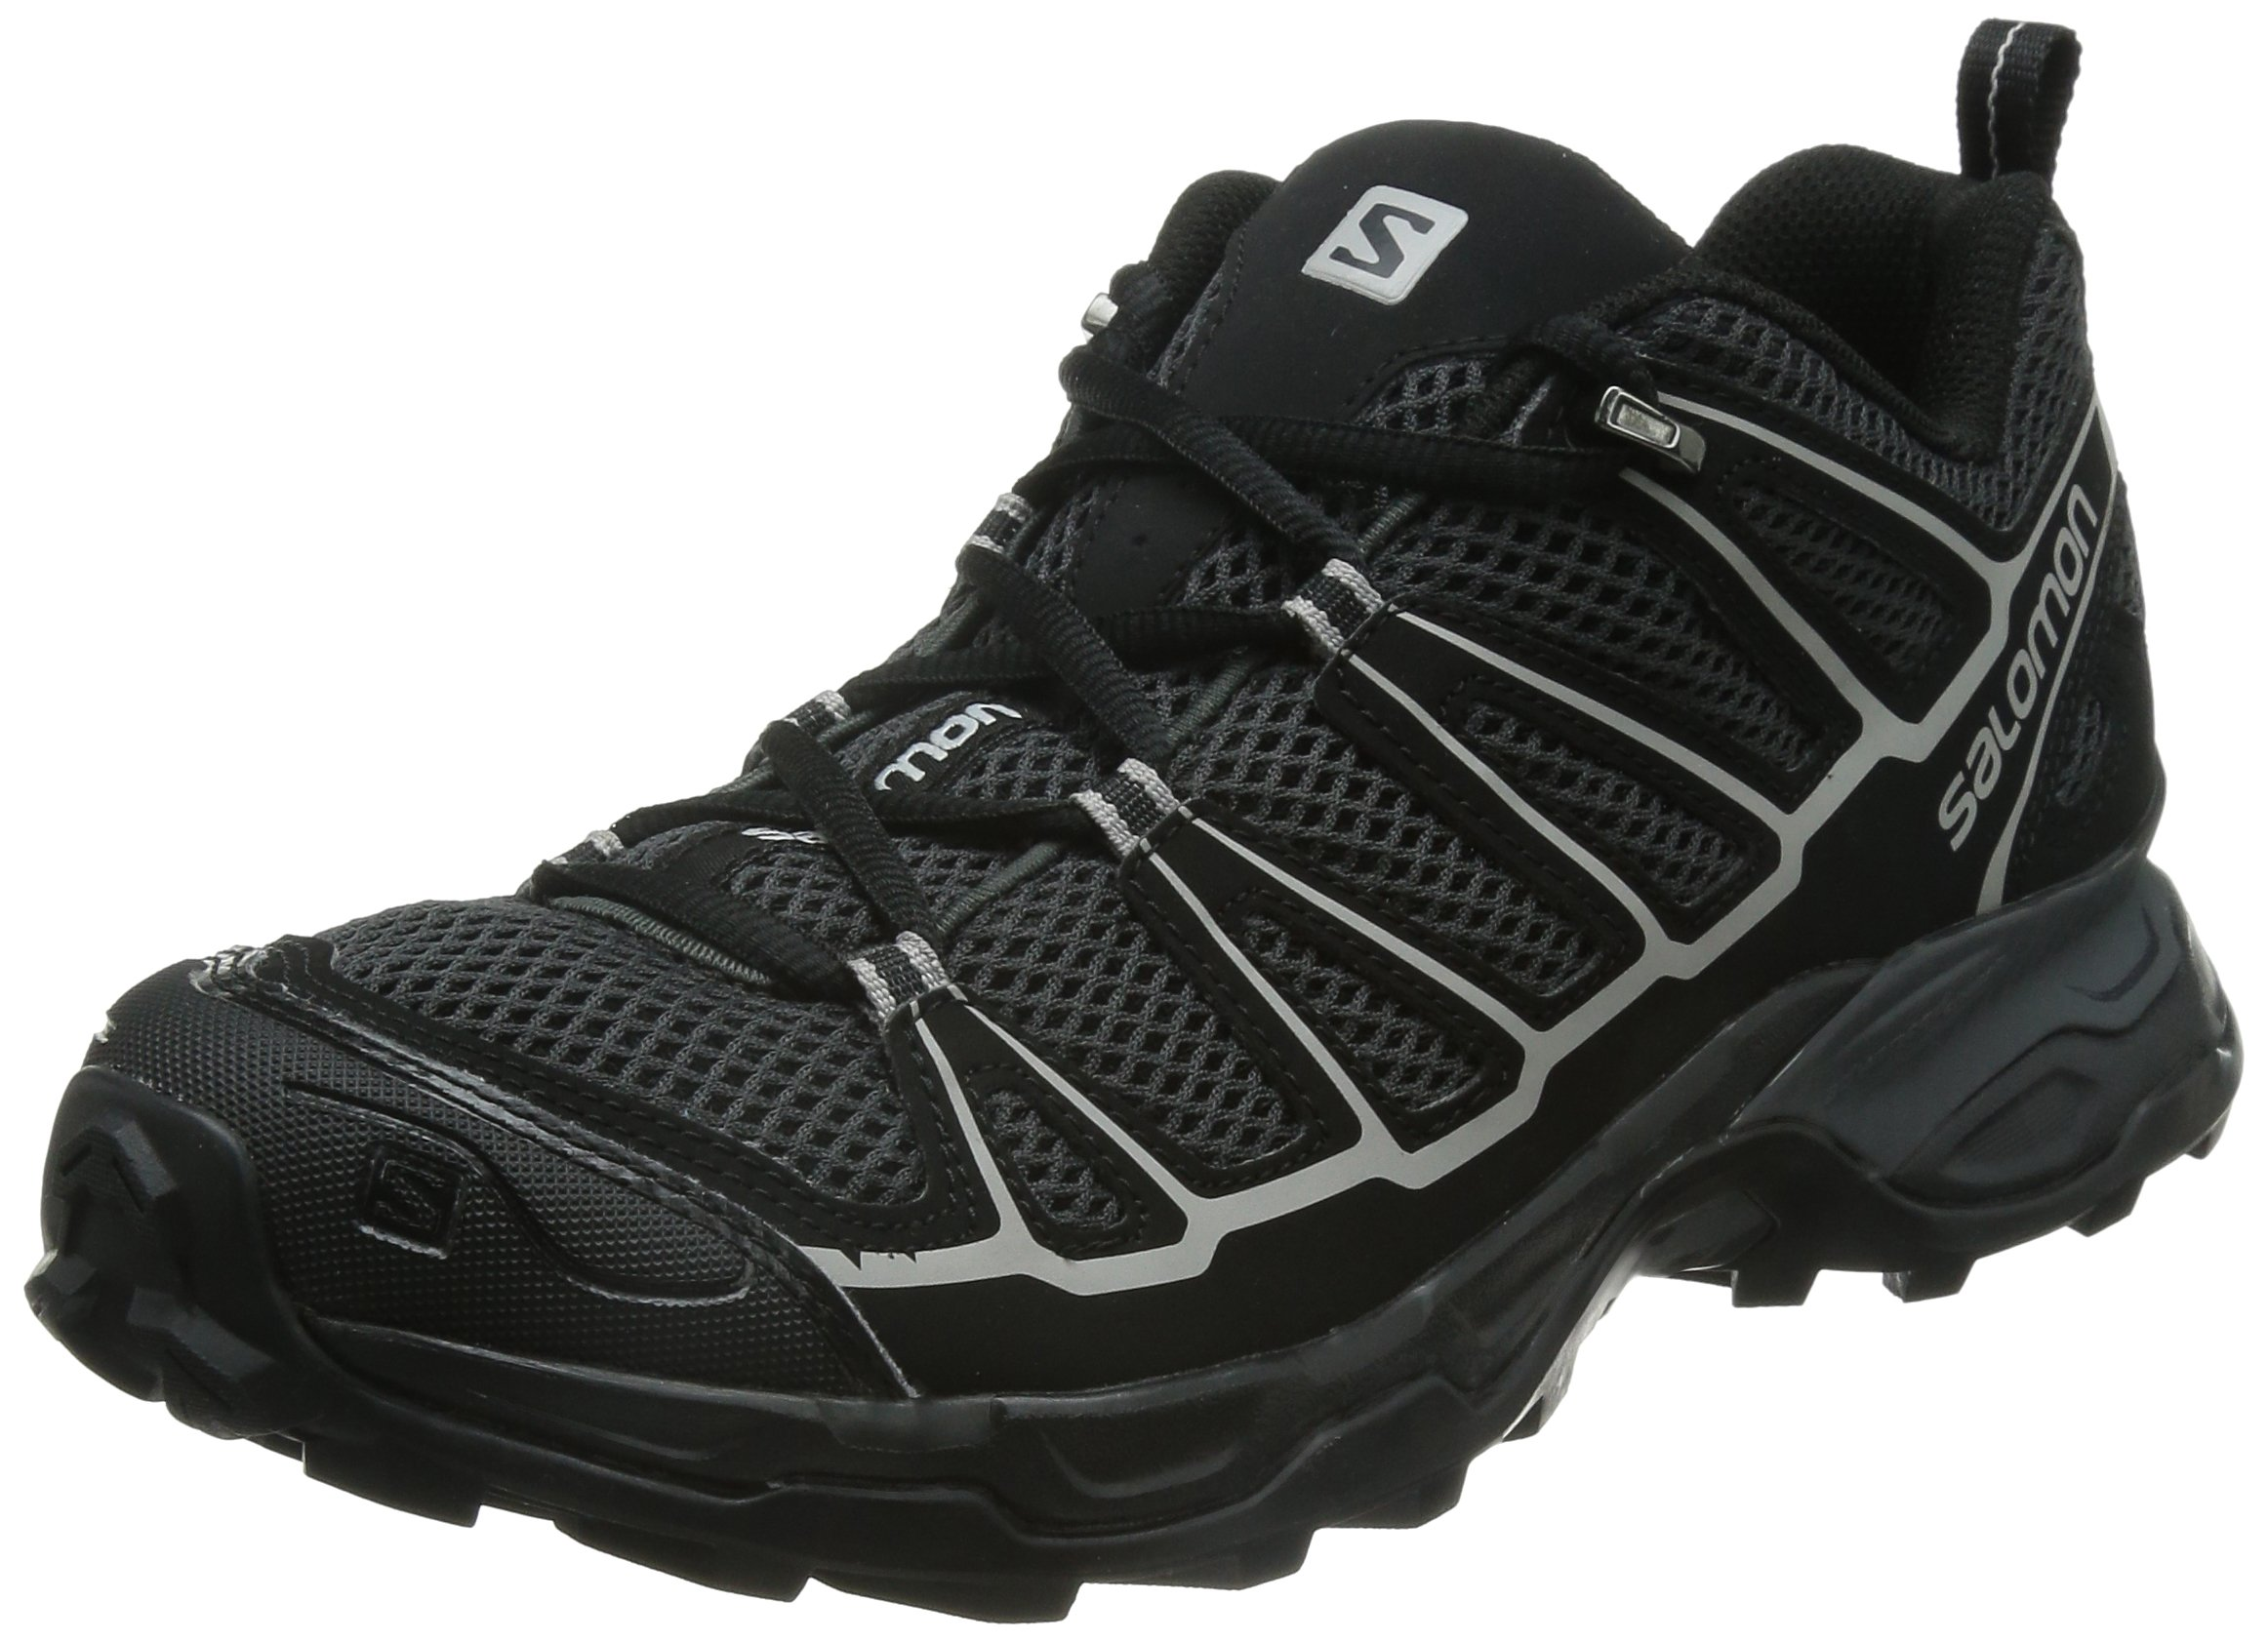 Salomon Men's X ULTRA PRIME Hiking Shoe, asphalt, 13 M US